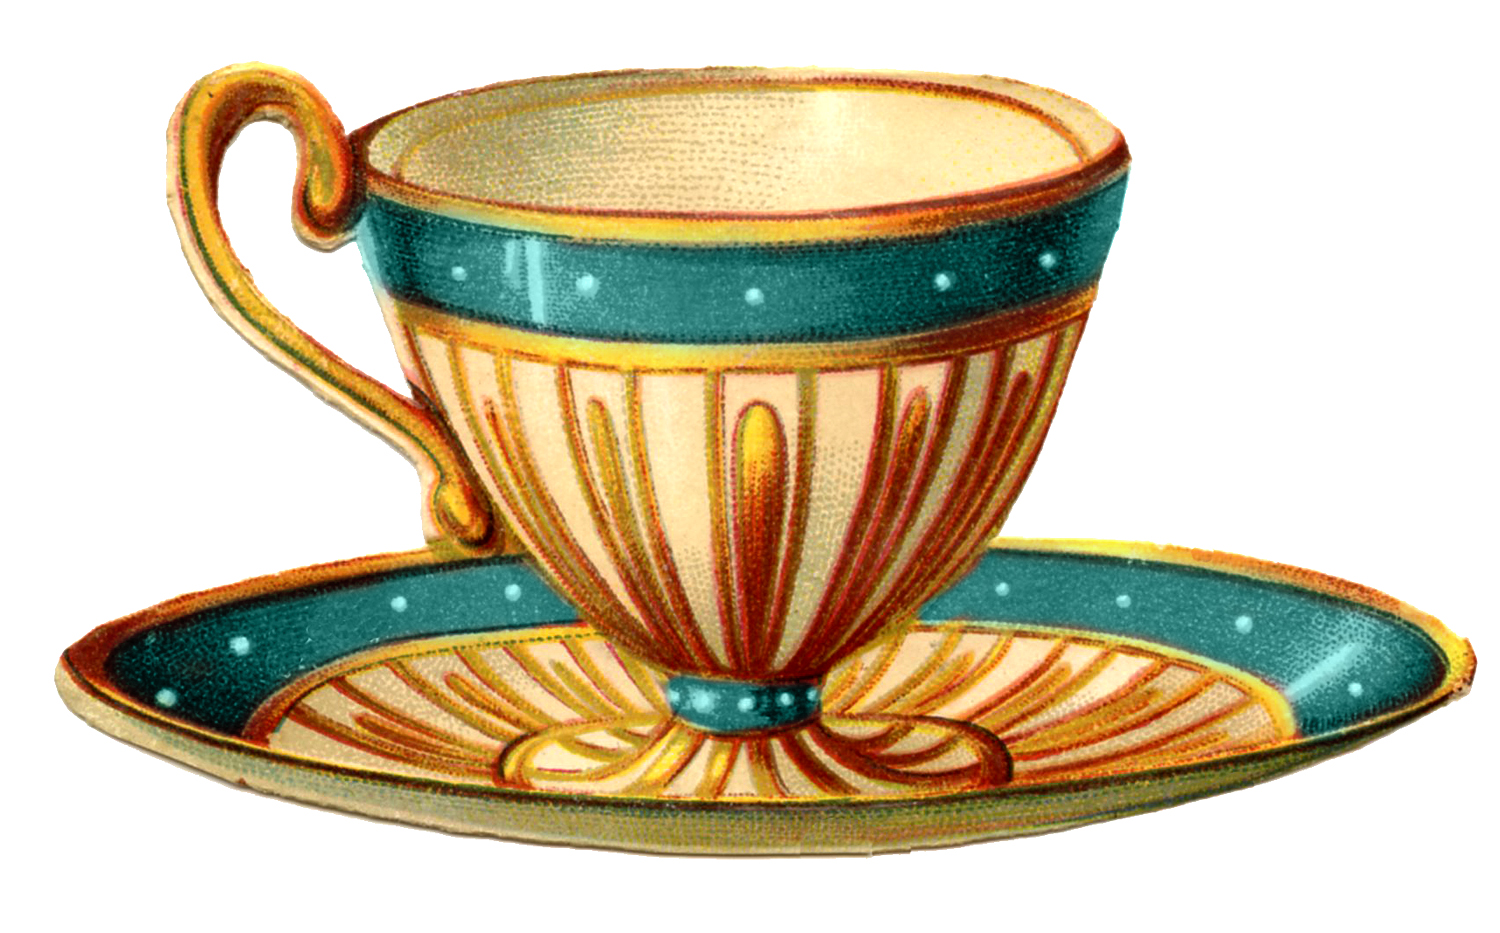 Teacup clipart tea set Vintage Graphics Fairy Pretty Graphics